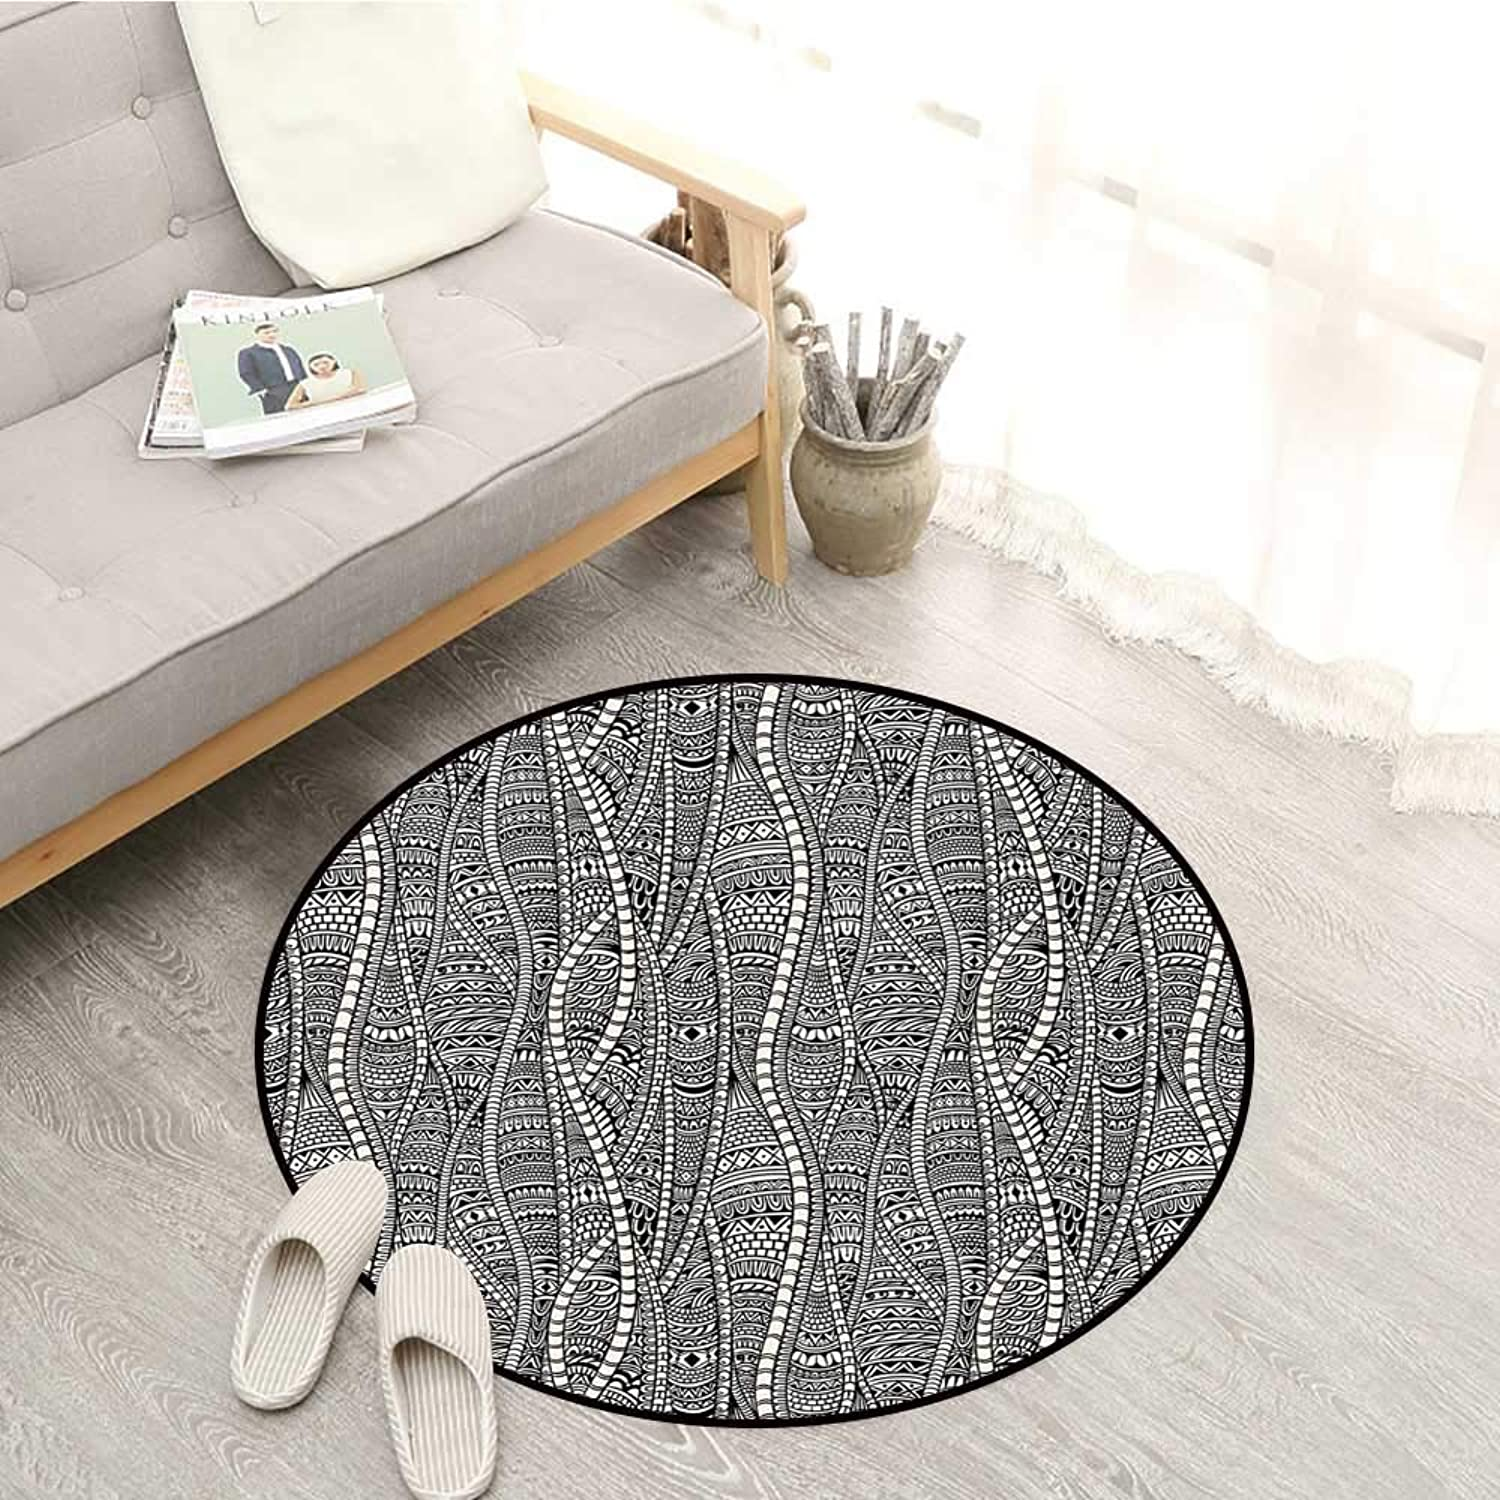 Black and White Skid-Resistant Rugs Rich Etnic Ornament with Tribal African Motifs Artistic Zentangle Vintage Sofa Coffee Table Mat 4'3  Black White